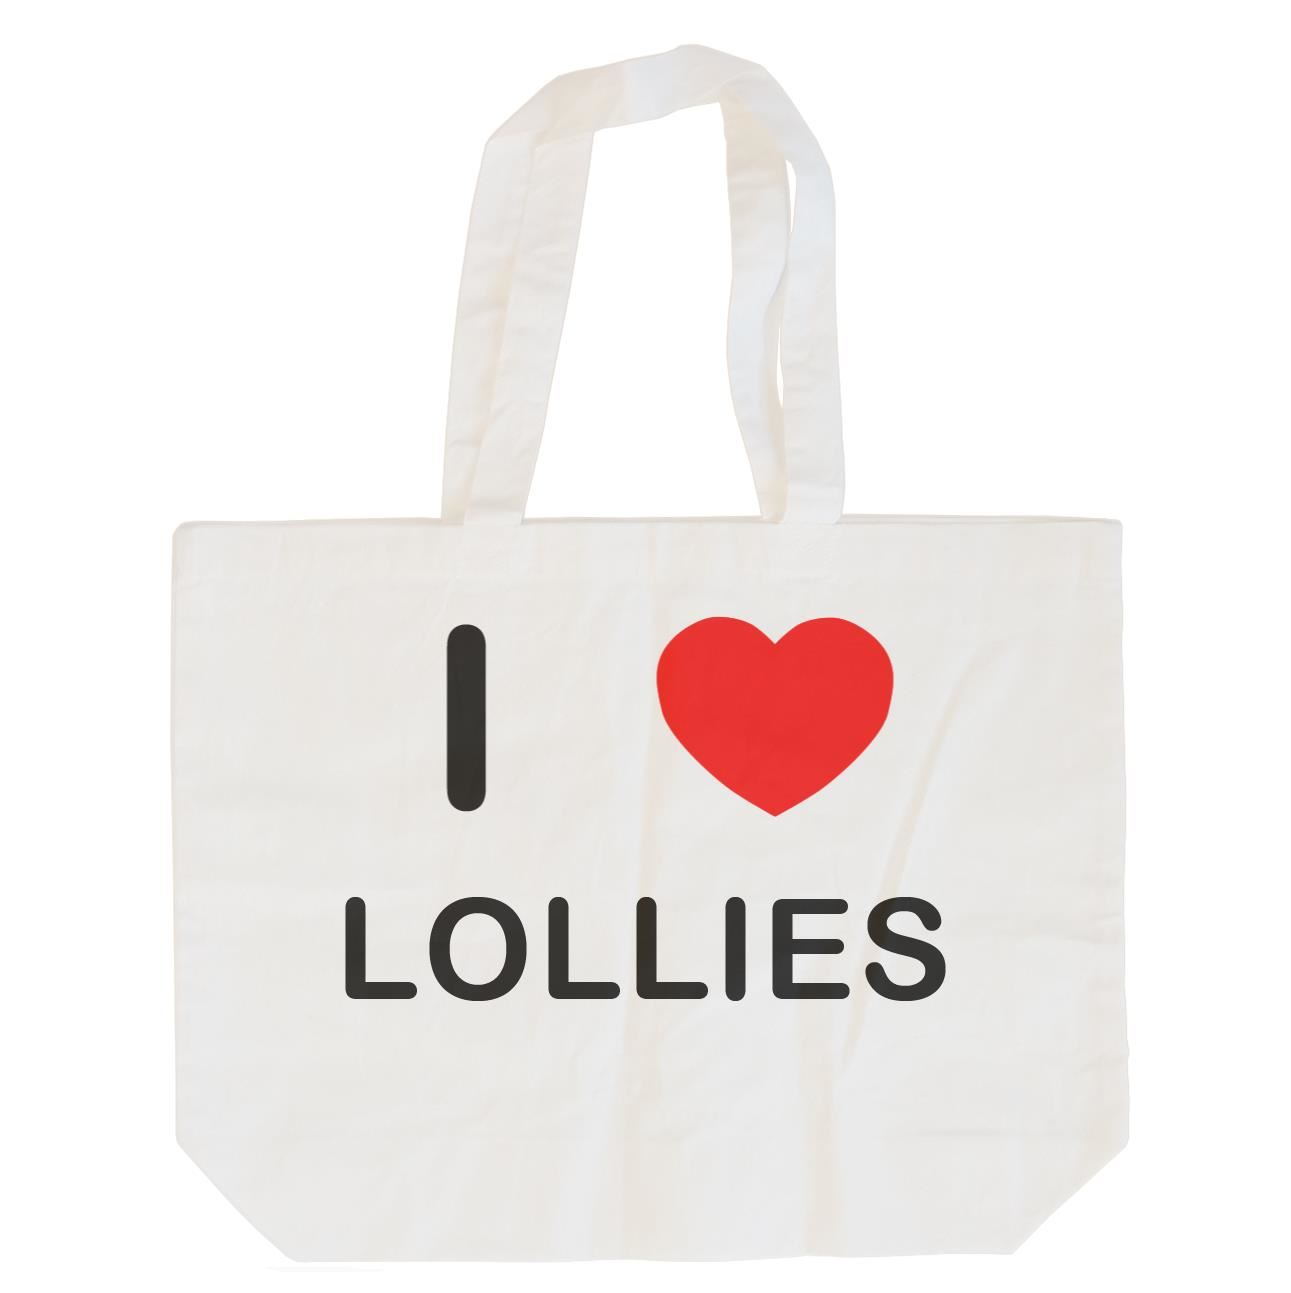 I Love Lollies - Cotton Bag | Size choice Tote, Shopper or Sling